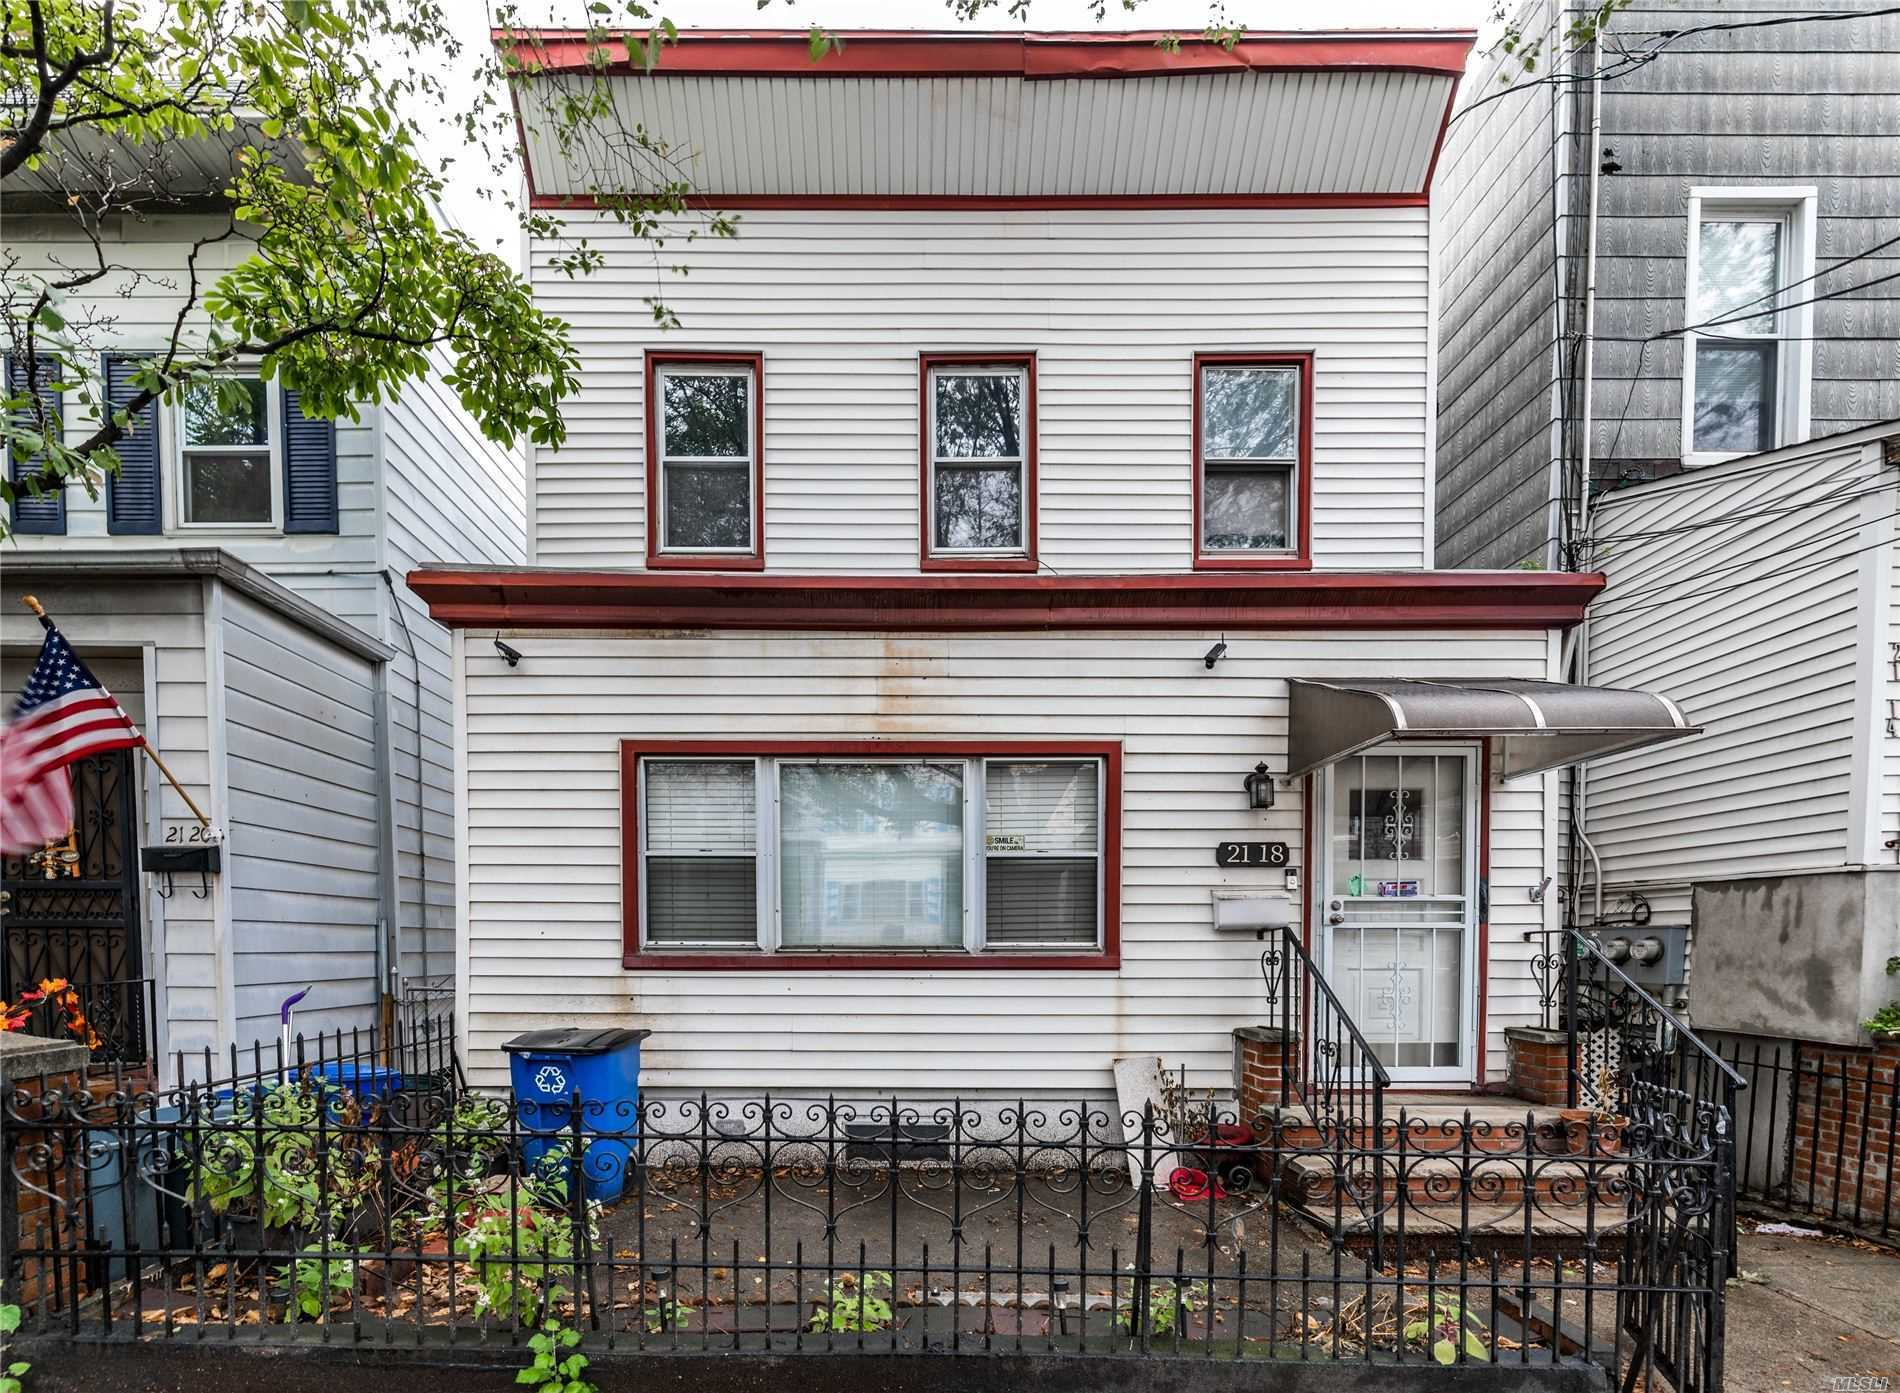 A two-stories, two-families, detached, frame house. Excellent location with a great potential. It is a 1st Fl: 2 Br, 1 bath, Living rm DUPLEX linked to the basement: 1 BR, 1 Ba. & EIK 2nd Fl: 2-Bedroom, Living room, Dinning room, EIKitch and a full bathroom. Located in great and much desirable Astoria, accessible to everything one could possibly need including major highways and great parks.